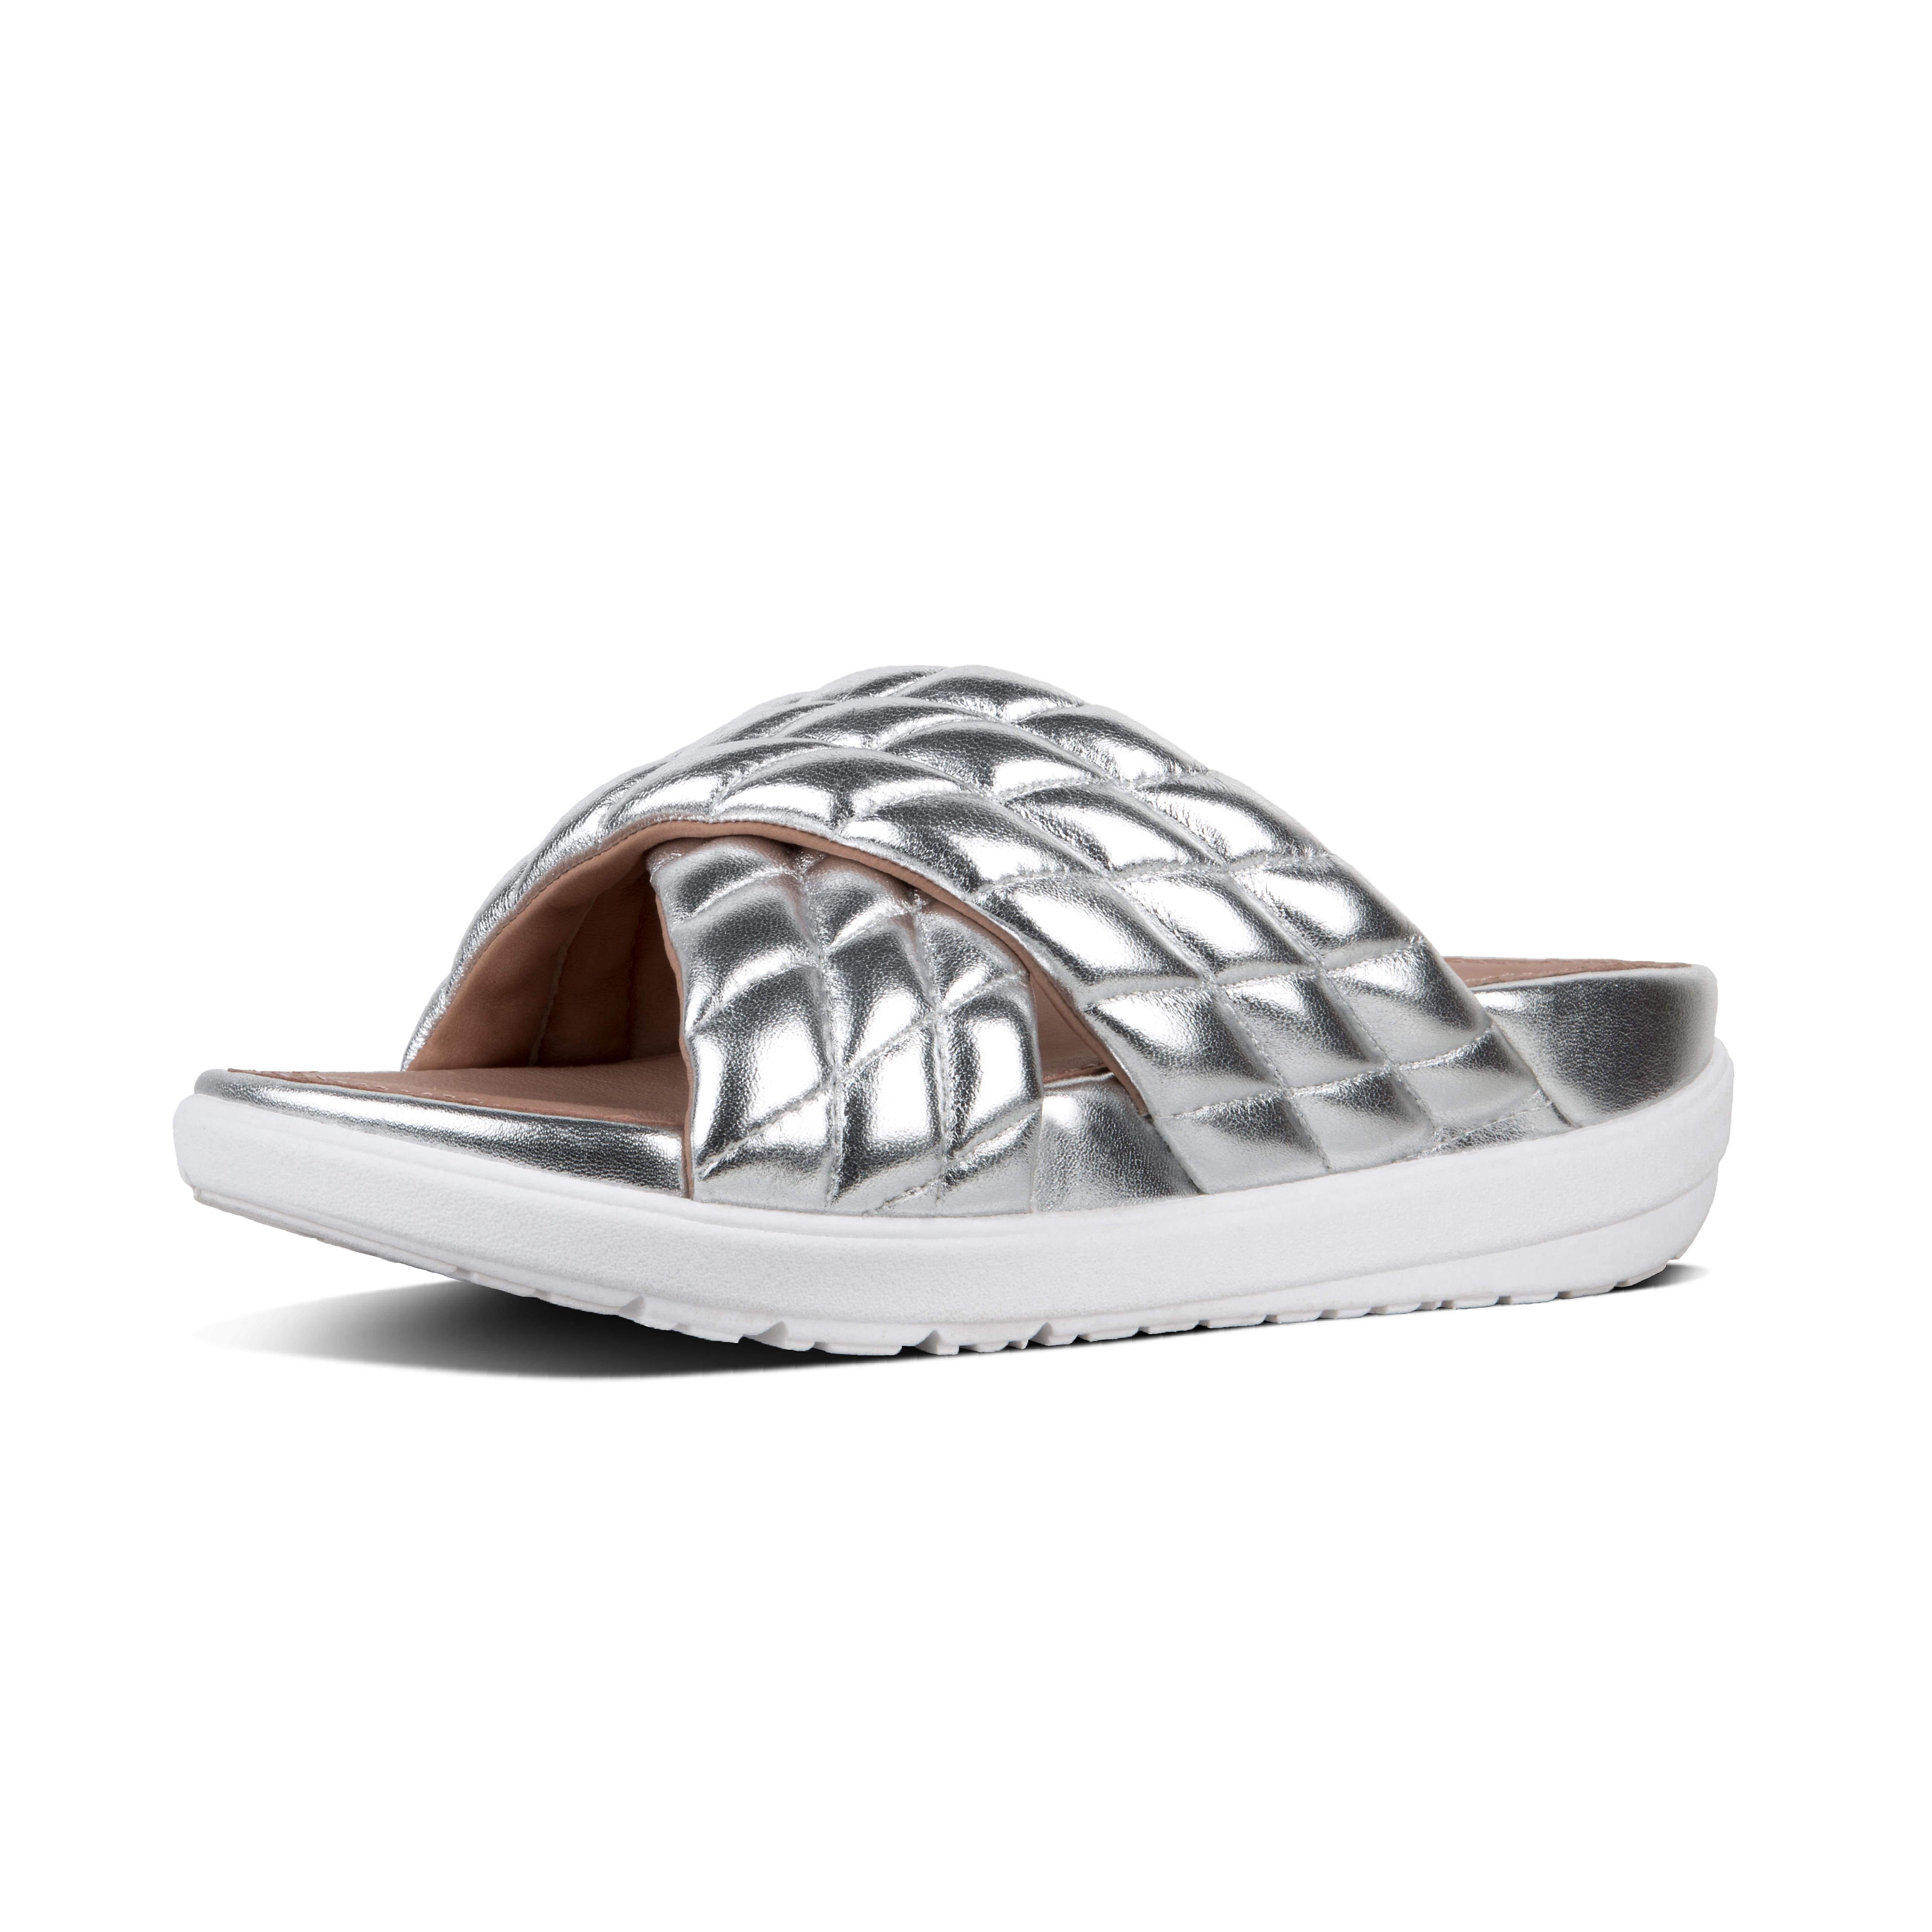 27fc5cb9917d7 Lyst - Fitflop Loosh Luxe in Metallic